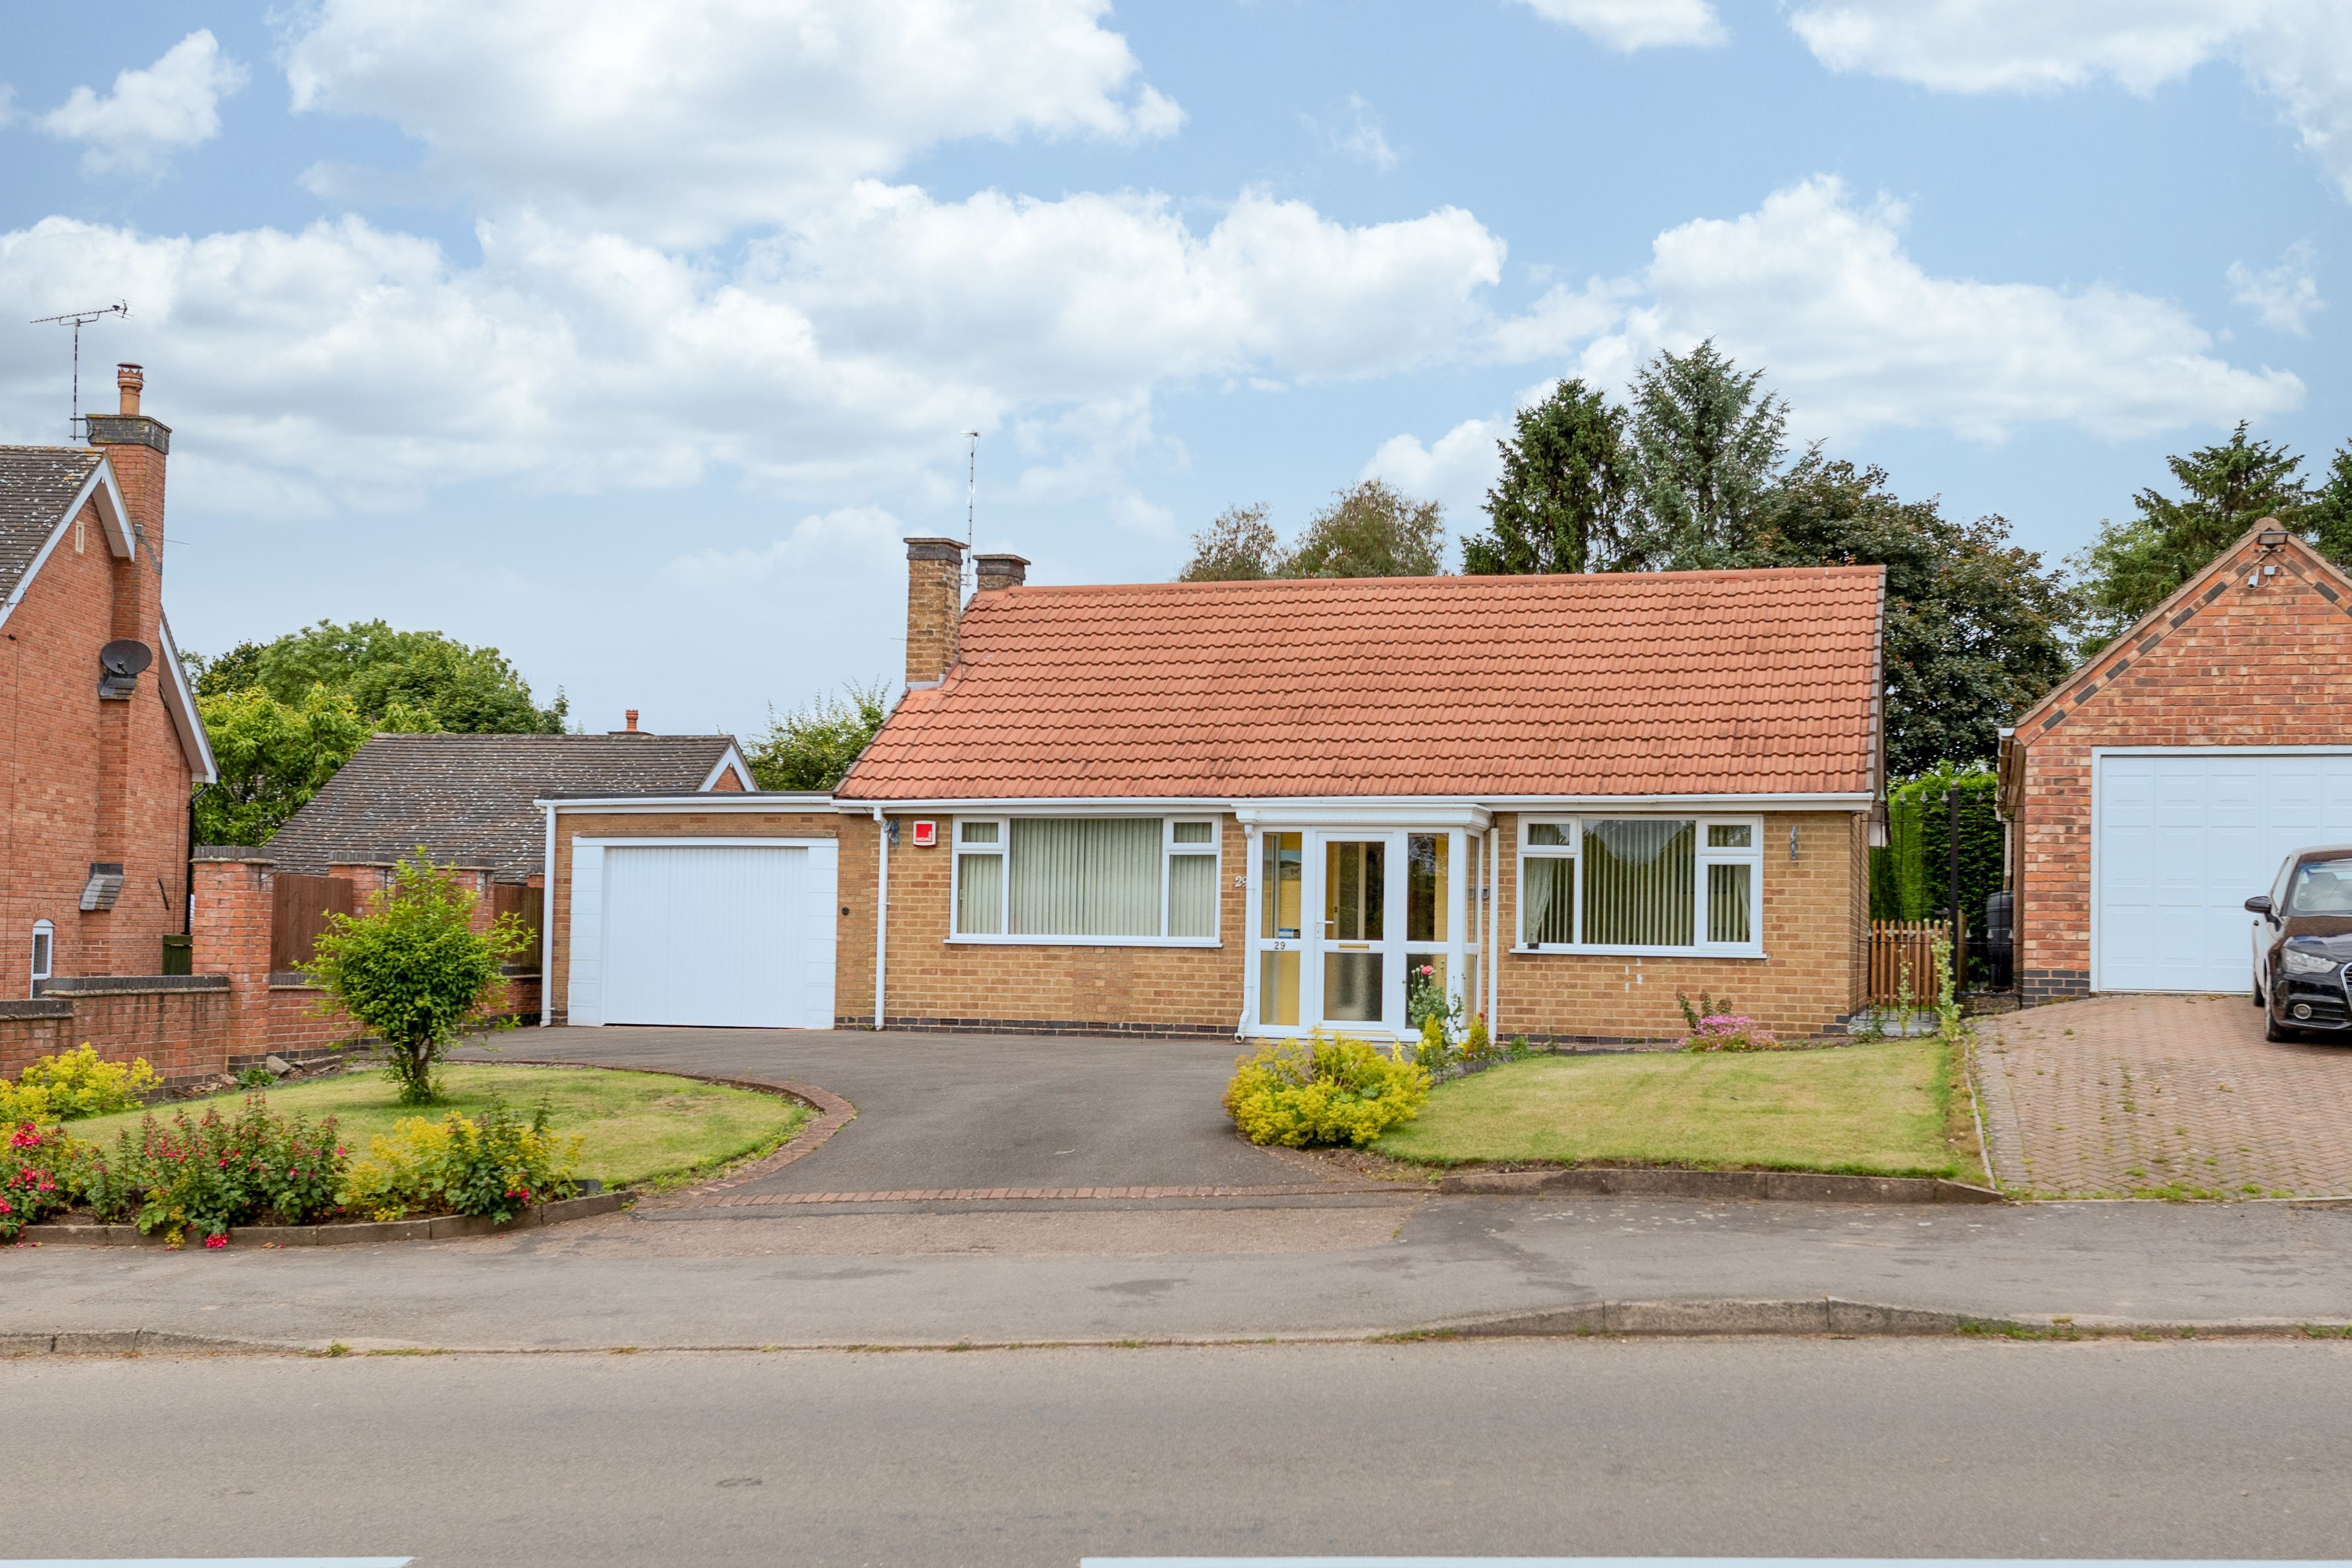 2 bed bungalow for sale in Main Street, Peckleton, LE9, Leicester  - Property Image 1